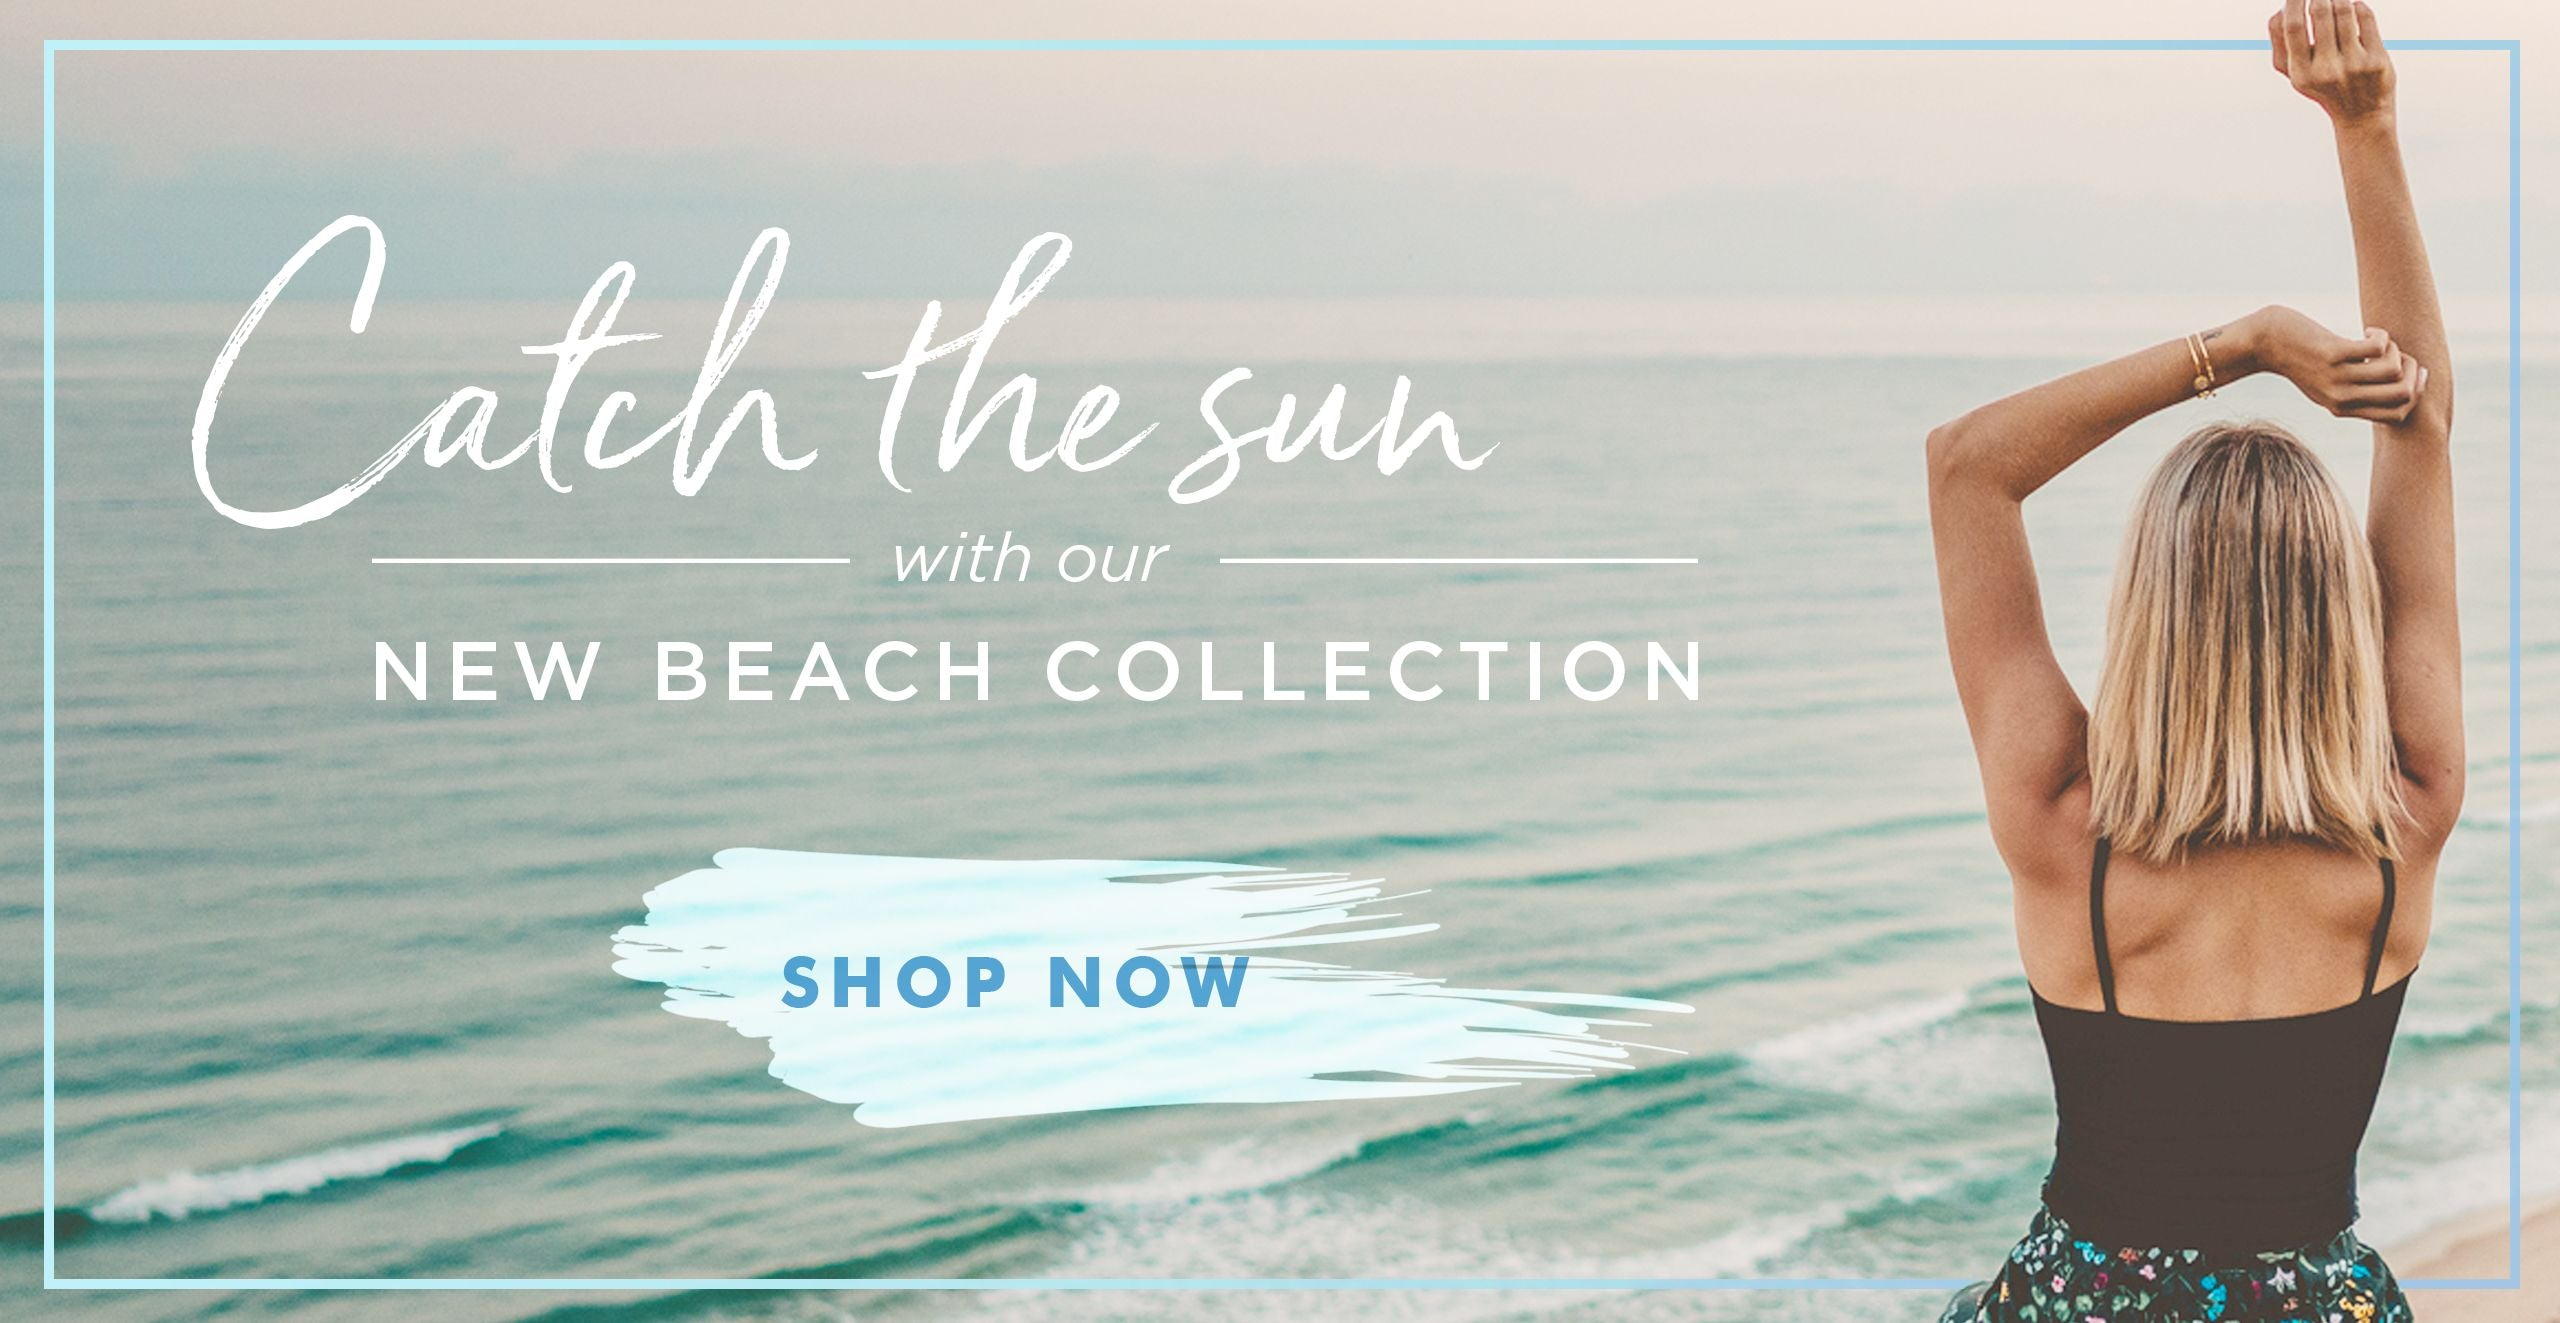 New beach collection